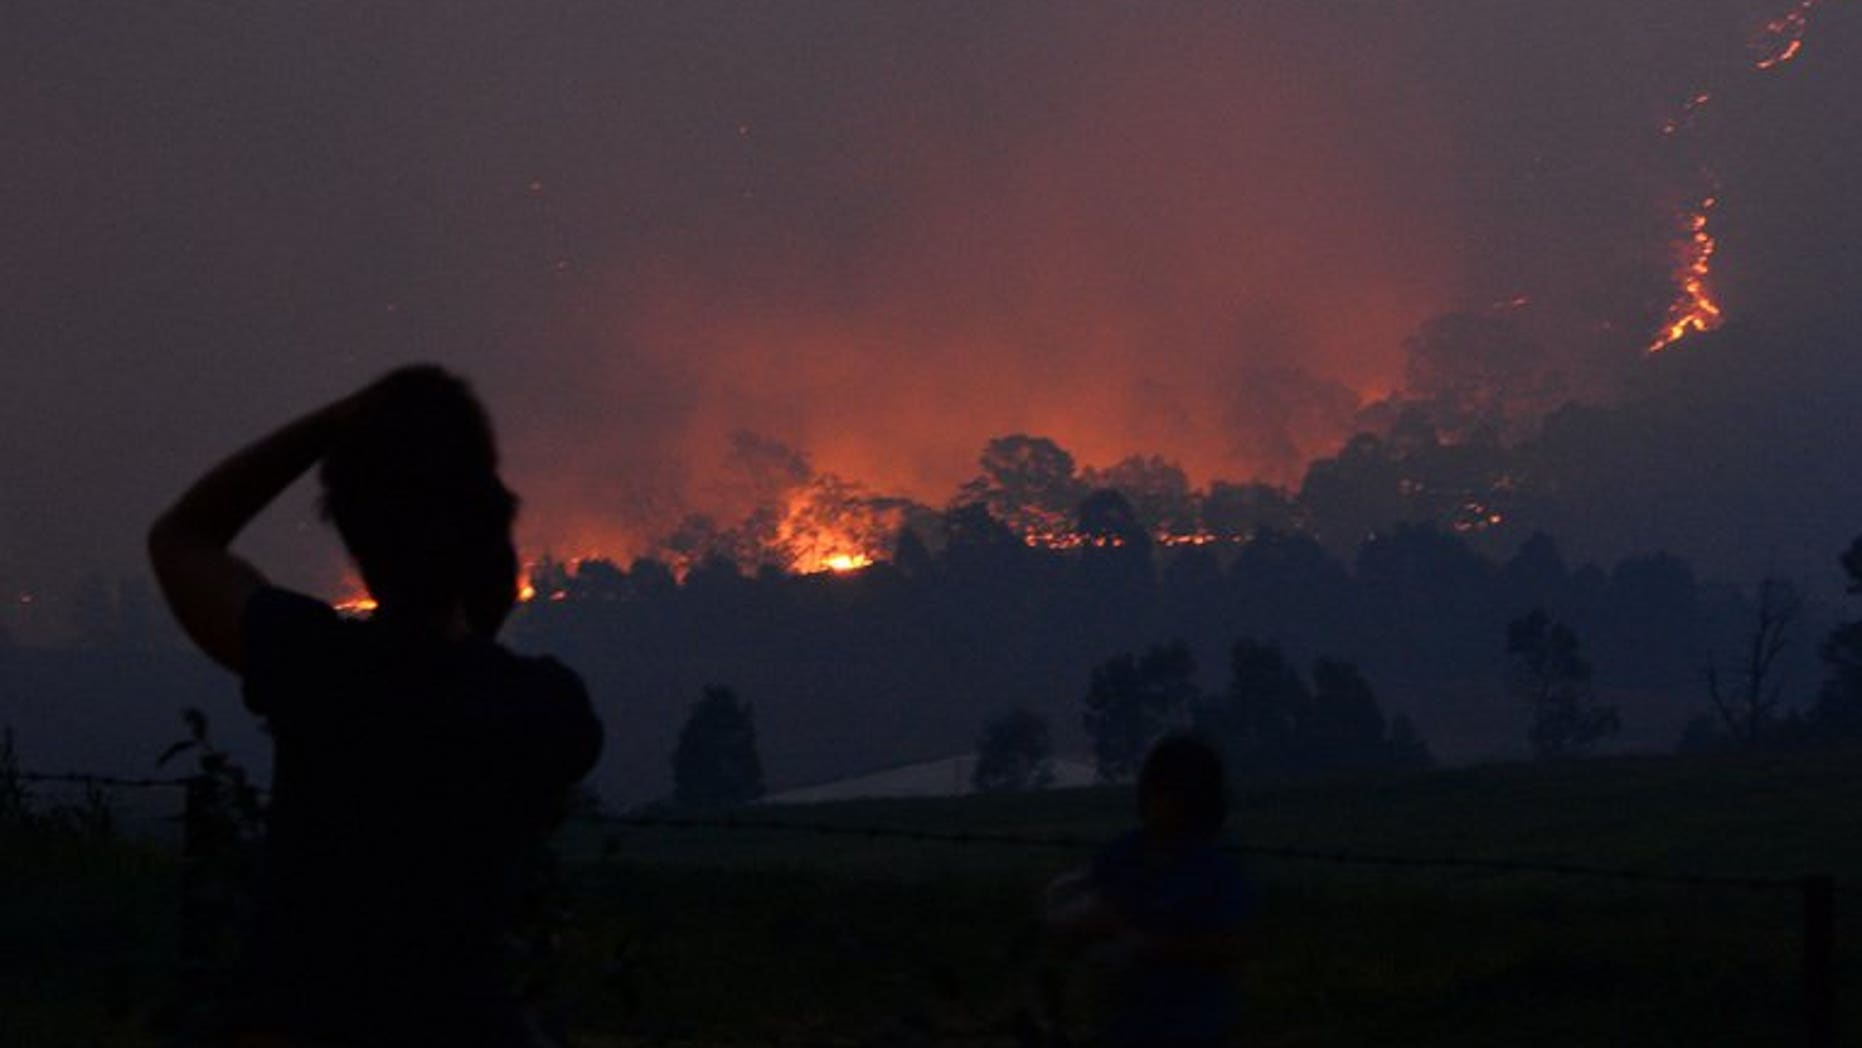 Residents look at the flames from a bush fire that erupted in Sydney's western suburb of Castlereagh, New South Wales on September 10, 2013. Dozens of bushfires erupted in Australia on Tuesday with six firefighters injured battling fierce infernos in western Sydney that destroyed two homes and which officials said could signal a difficult summer.